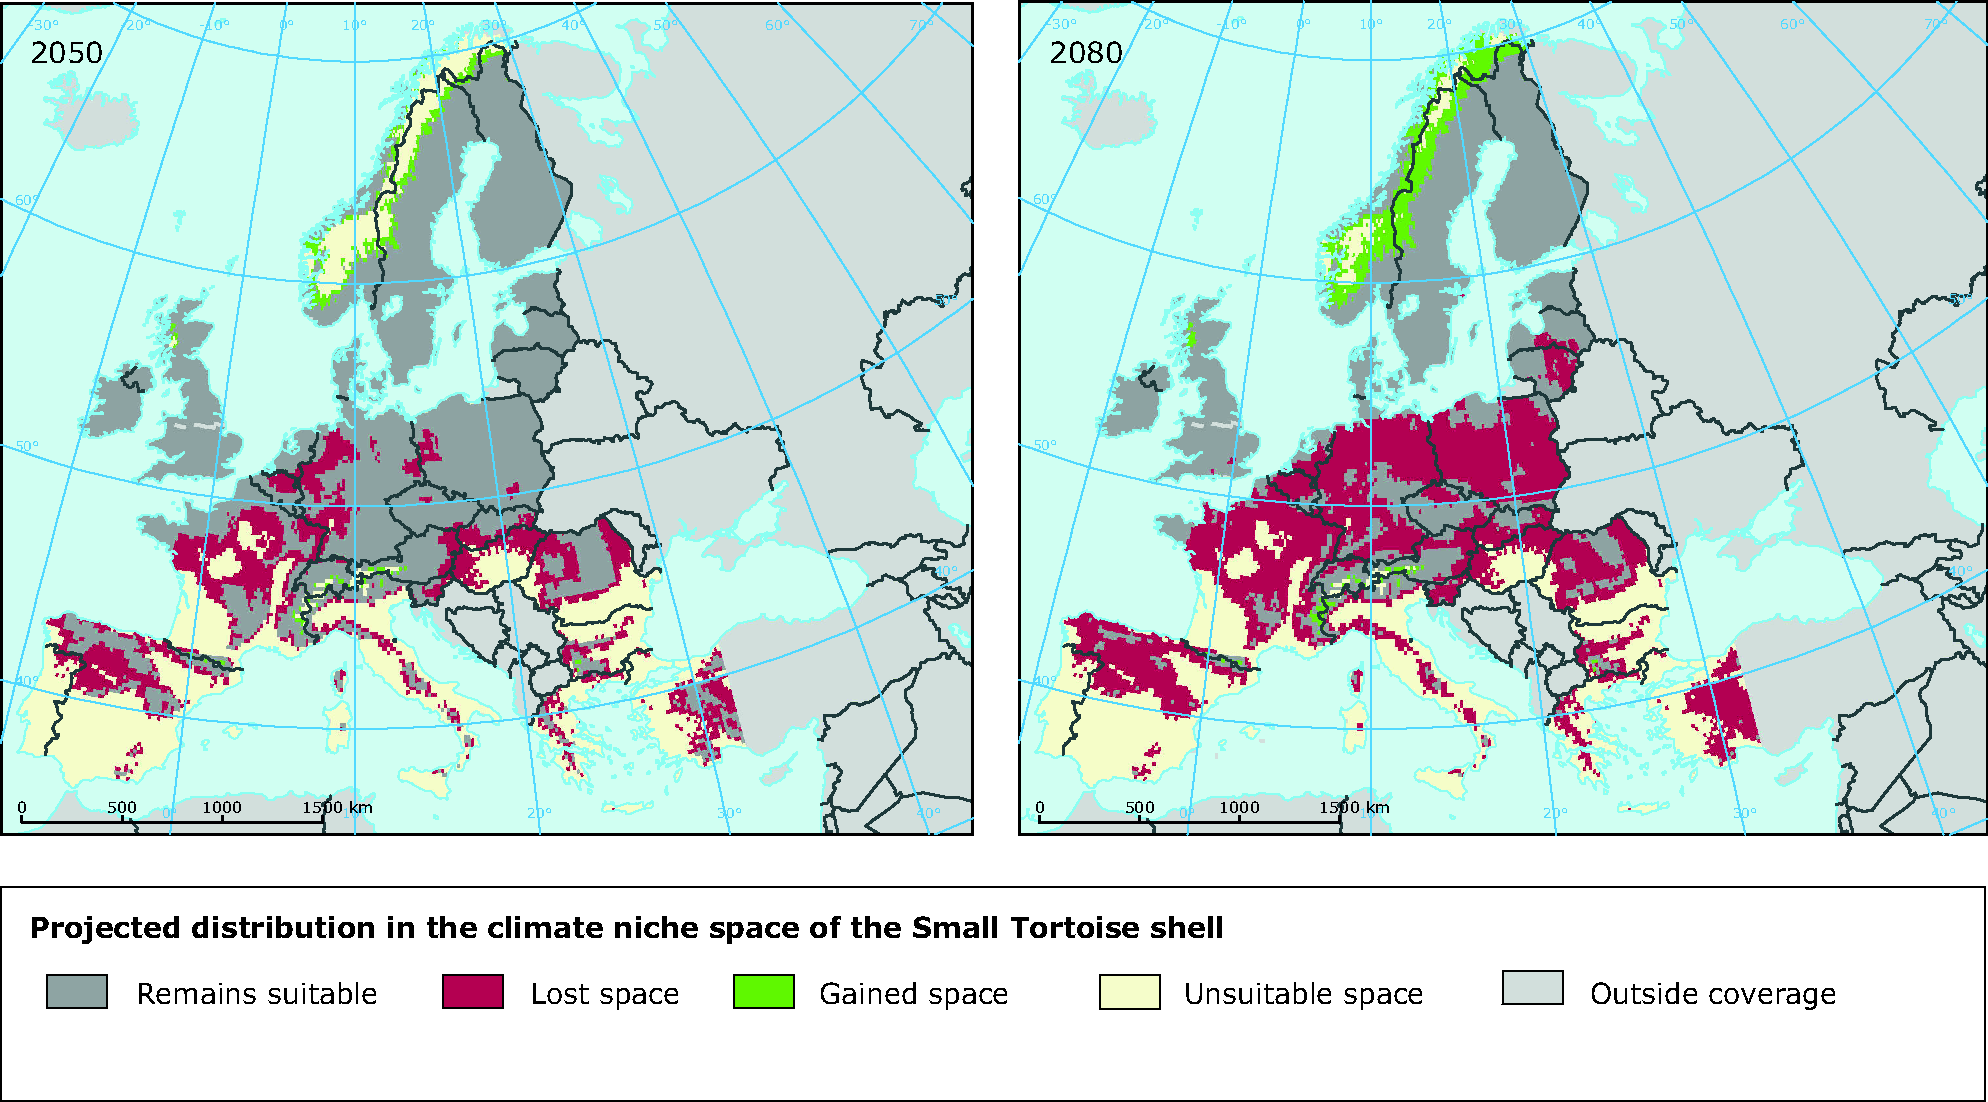 Projected changes in the climate niche space of the Small Tortoise shell